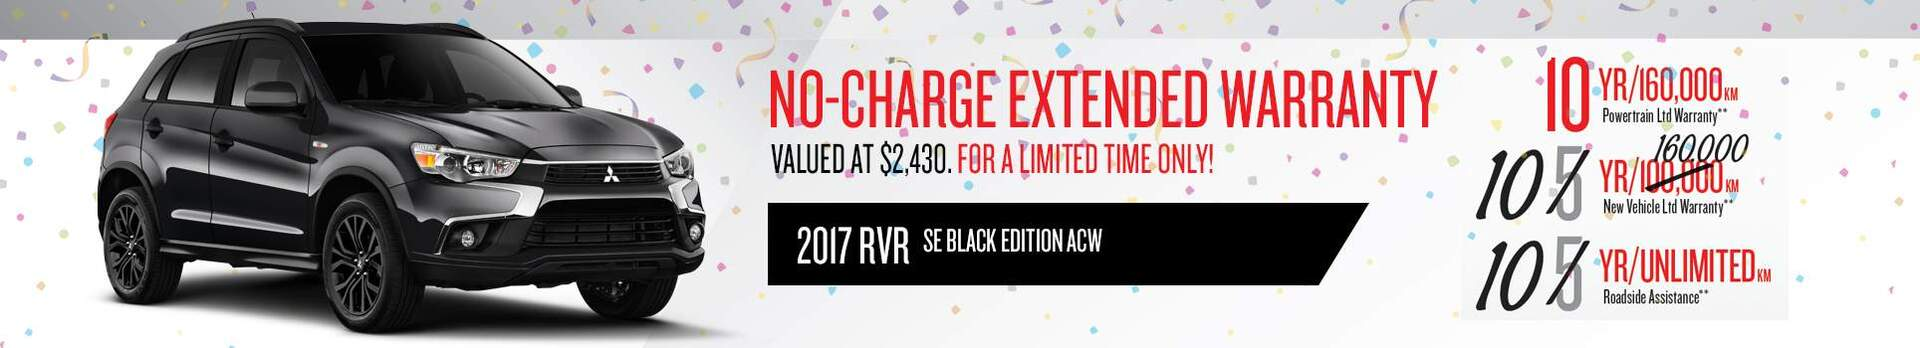 2017 RVR No-Charge Extended Warrany